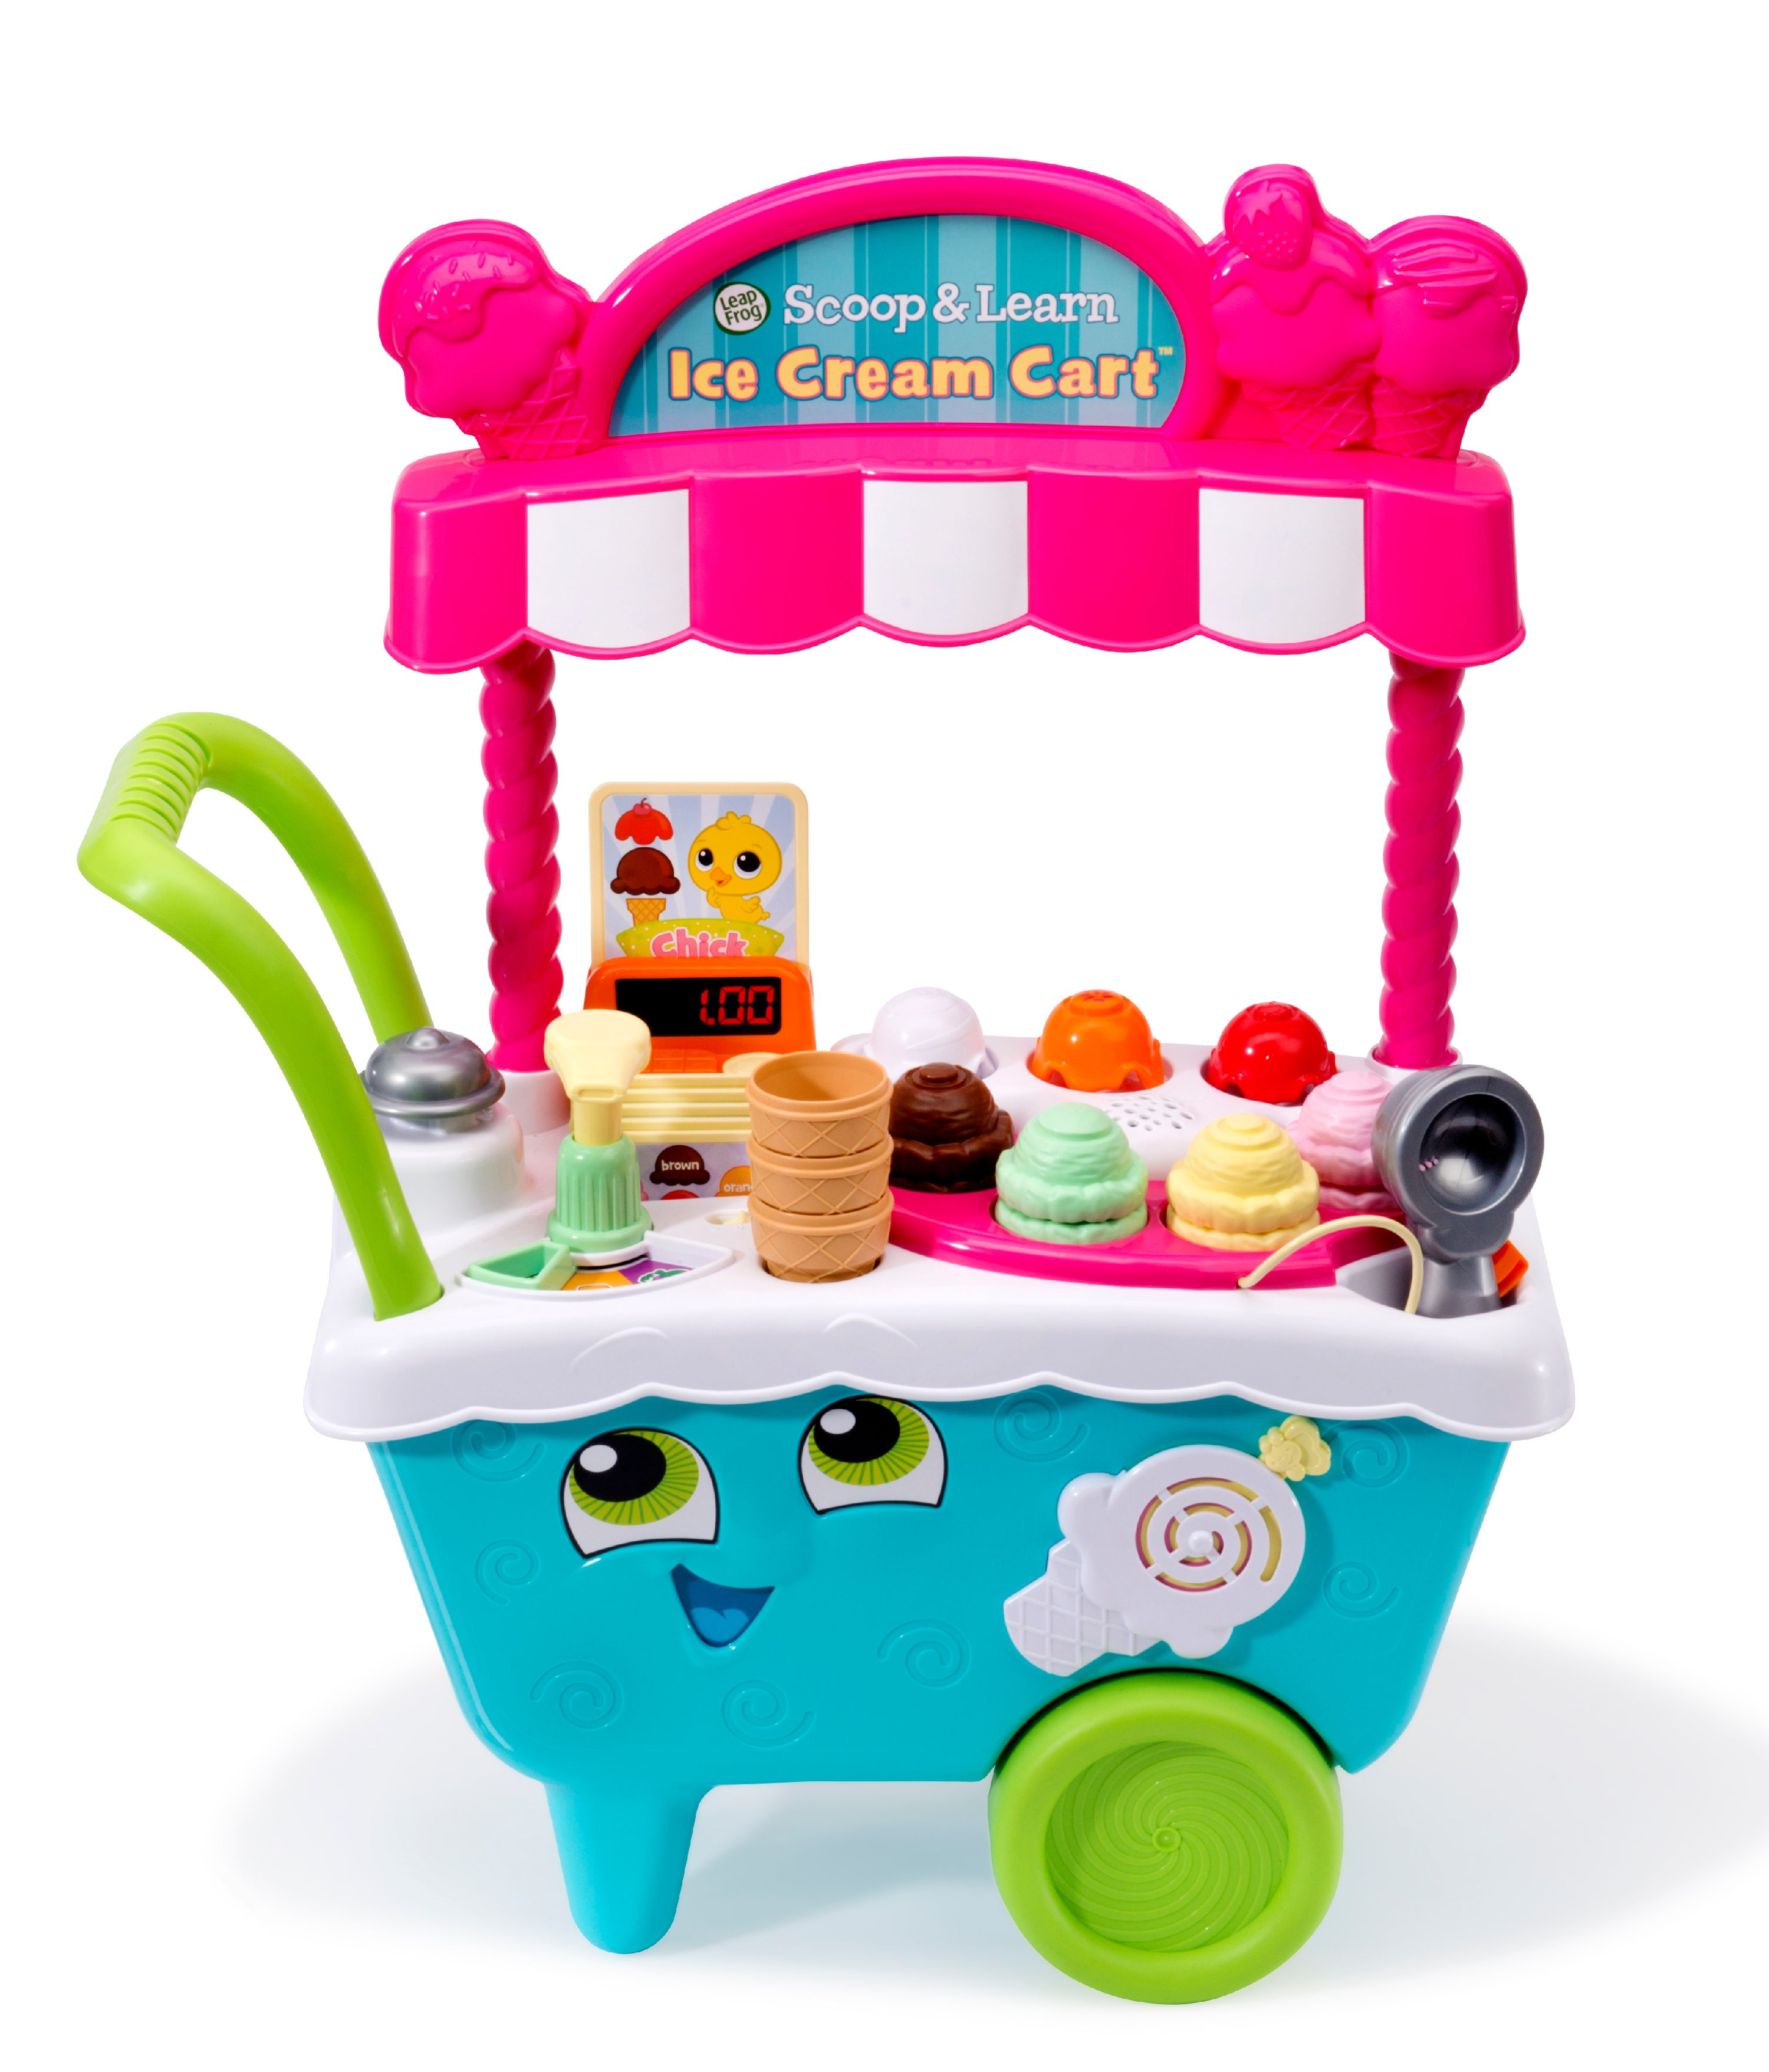 Leapfrog Scoop And Learn Ice Cream Cart Play Kitchen Toy For Kids From Walmart In Austin Tx Burpy Com